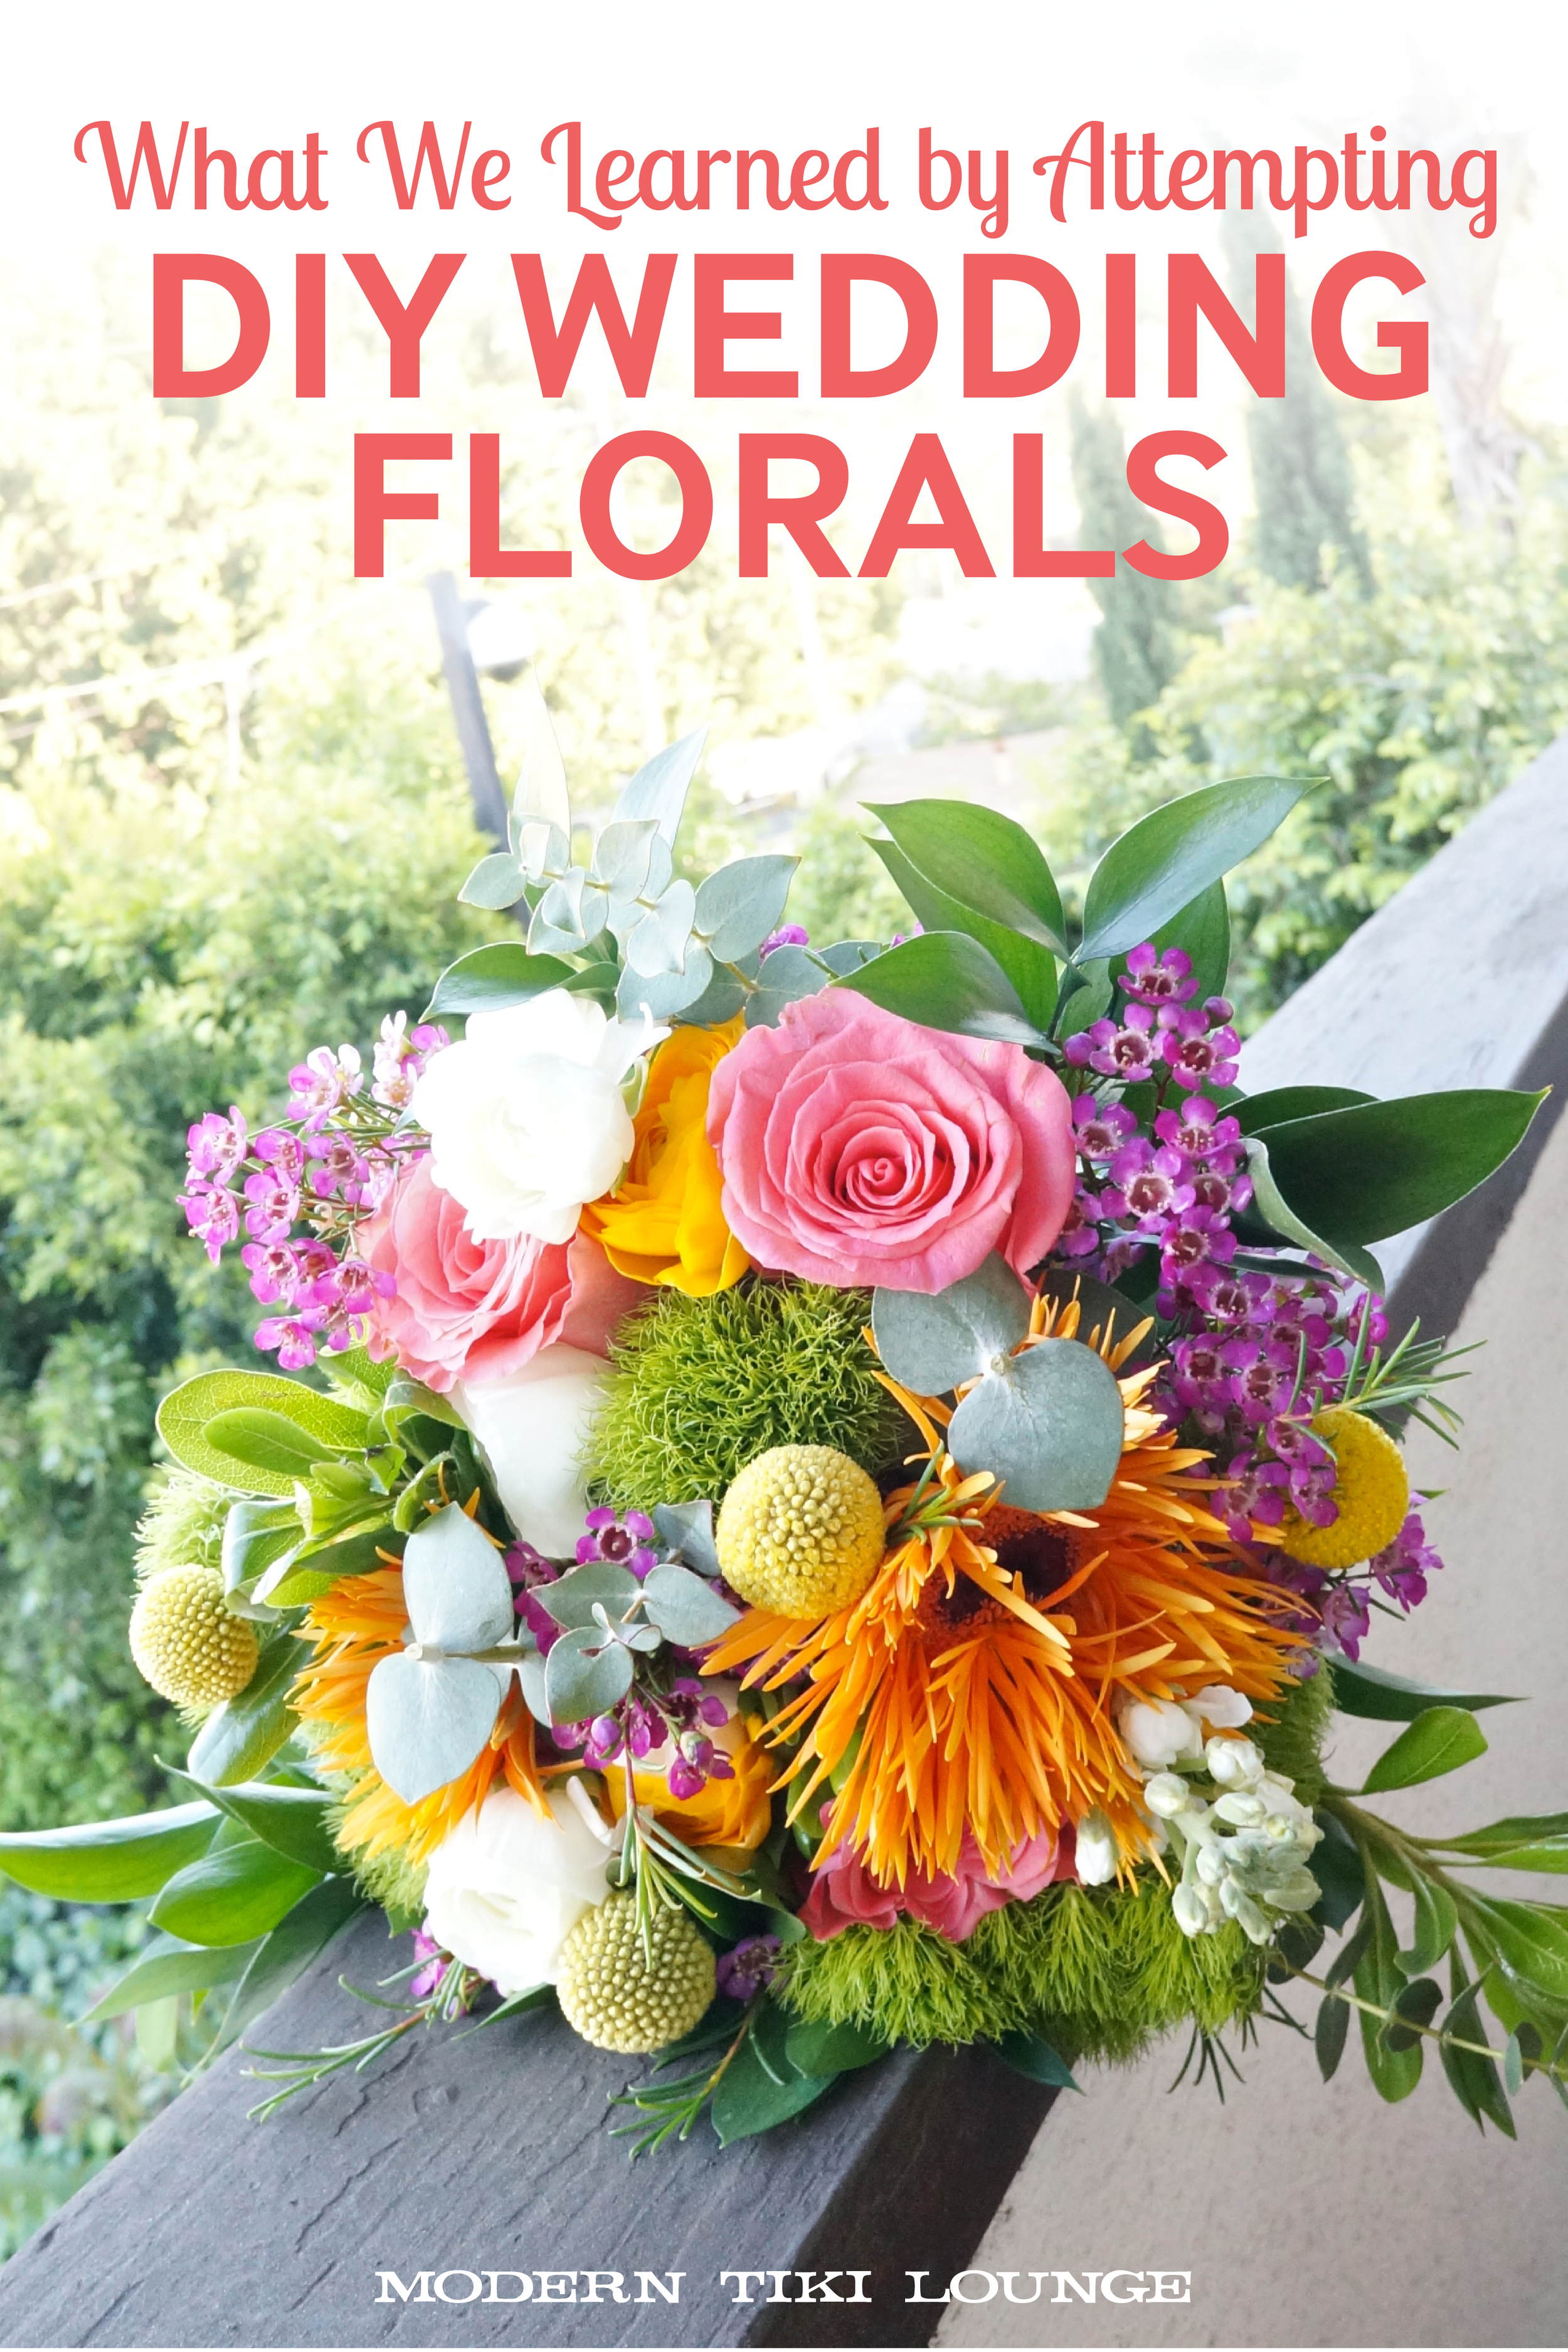 what-we-learned-by-attempting-diy-wedding-florals.jpg